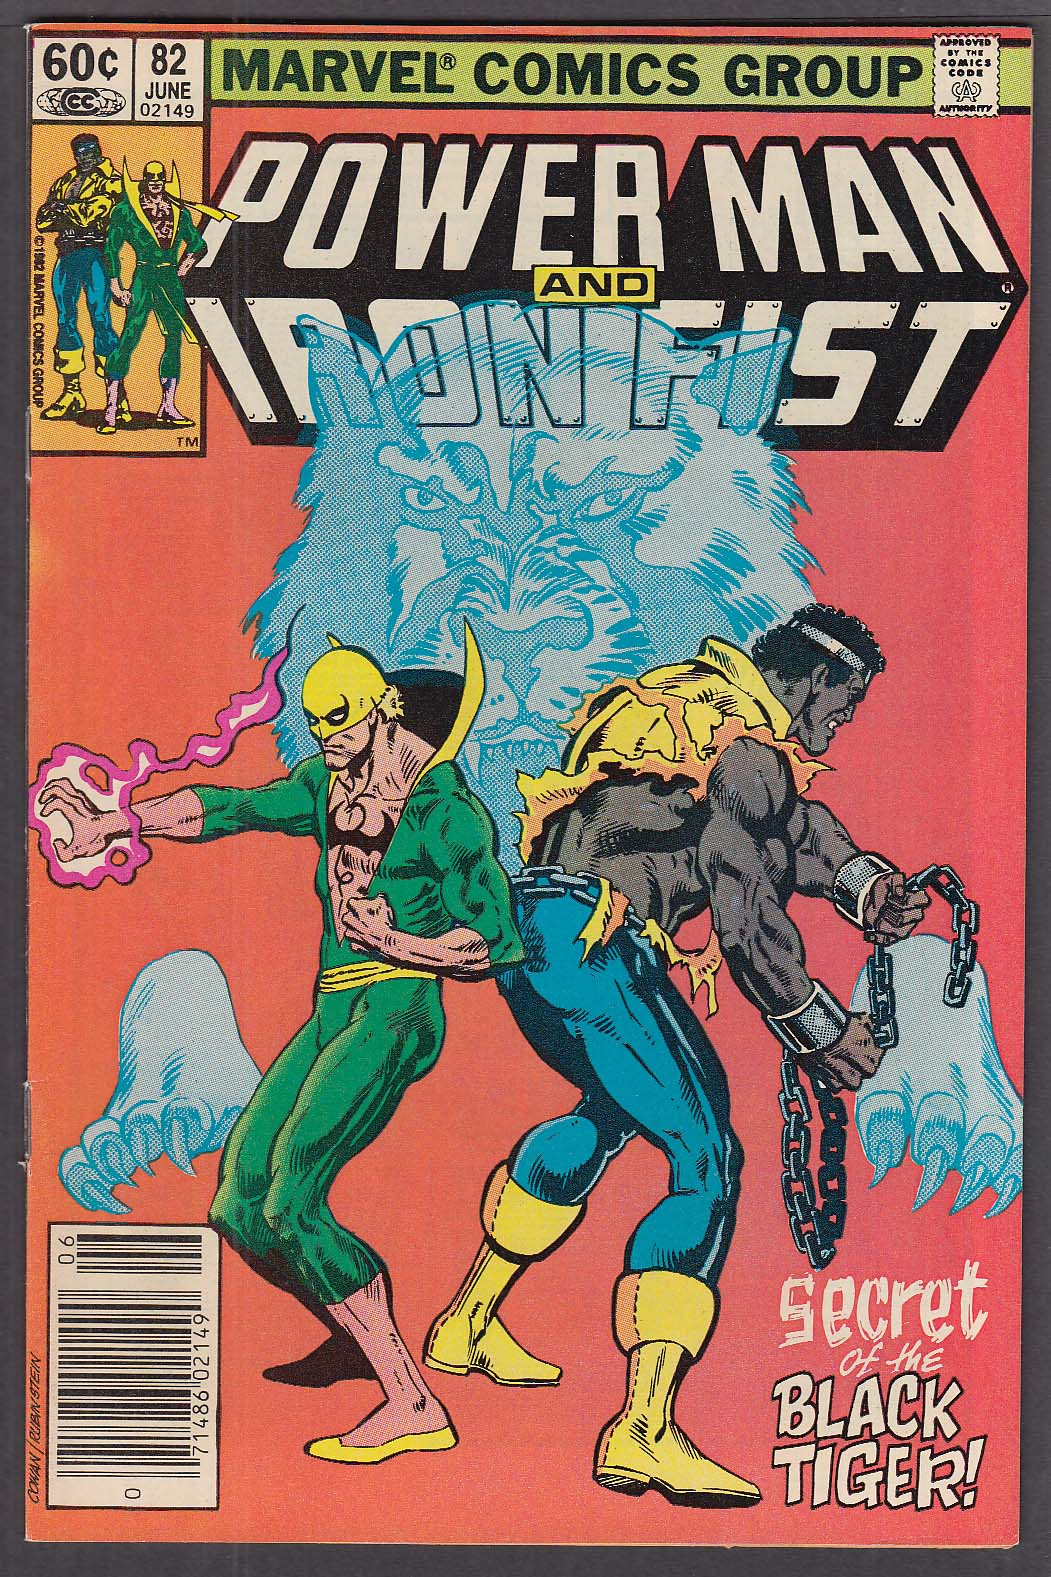 Image for POWER MAN & IRON FIST #82 Marvel comic book 6 1982